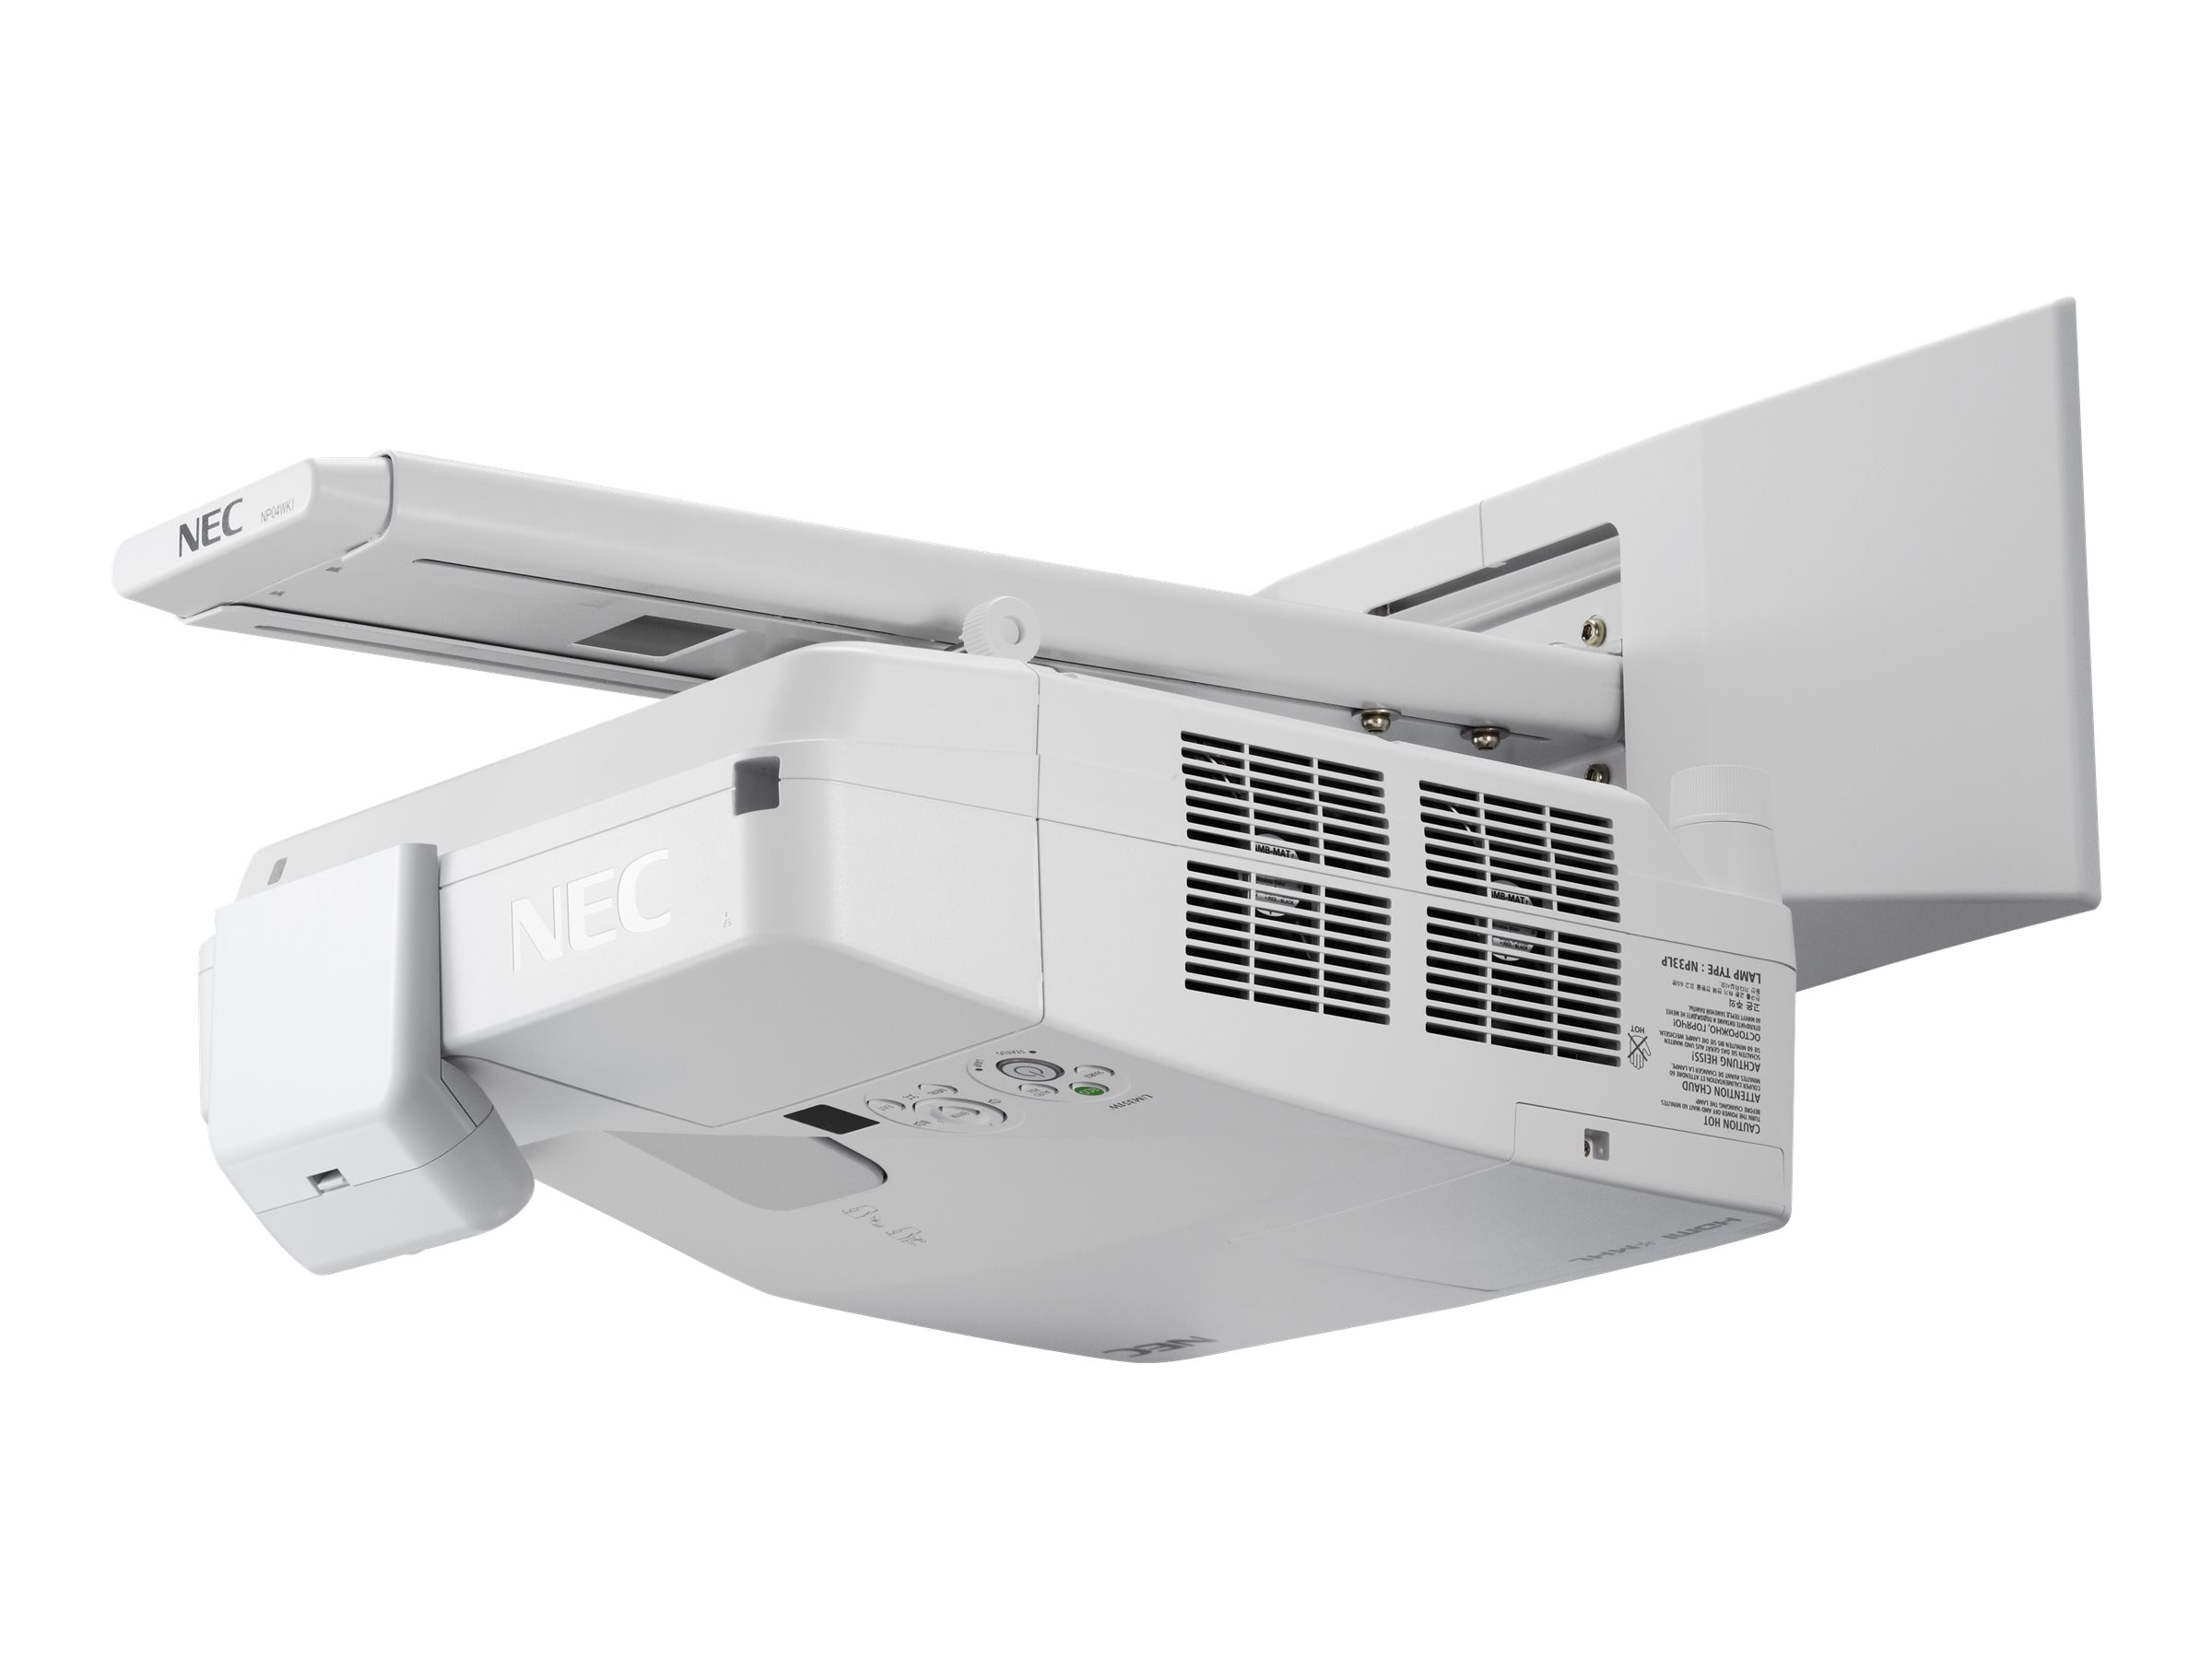 NEC UM361X Ultra Short Throw LCD Projector, 3600 Lumens, White with Wall Mount, Interactive Module, Pens, NP-UM361XI-WK, 18193146, Projectors